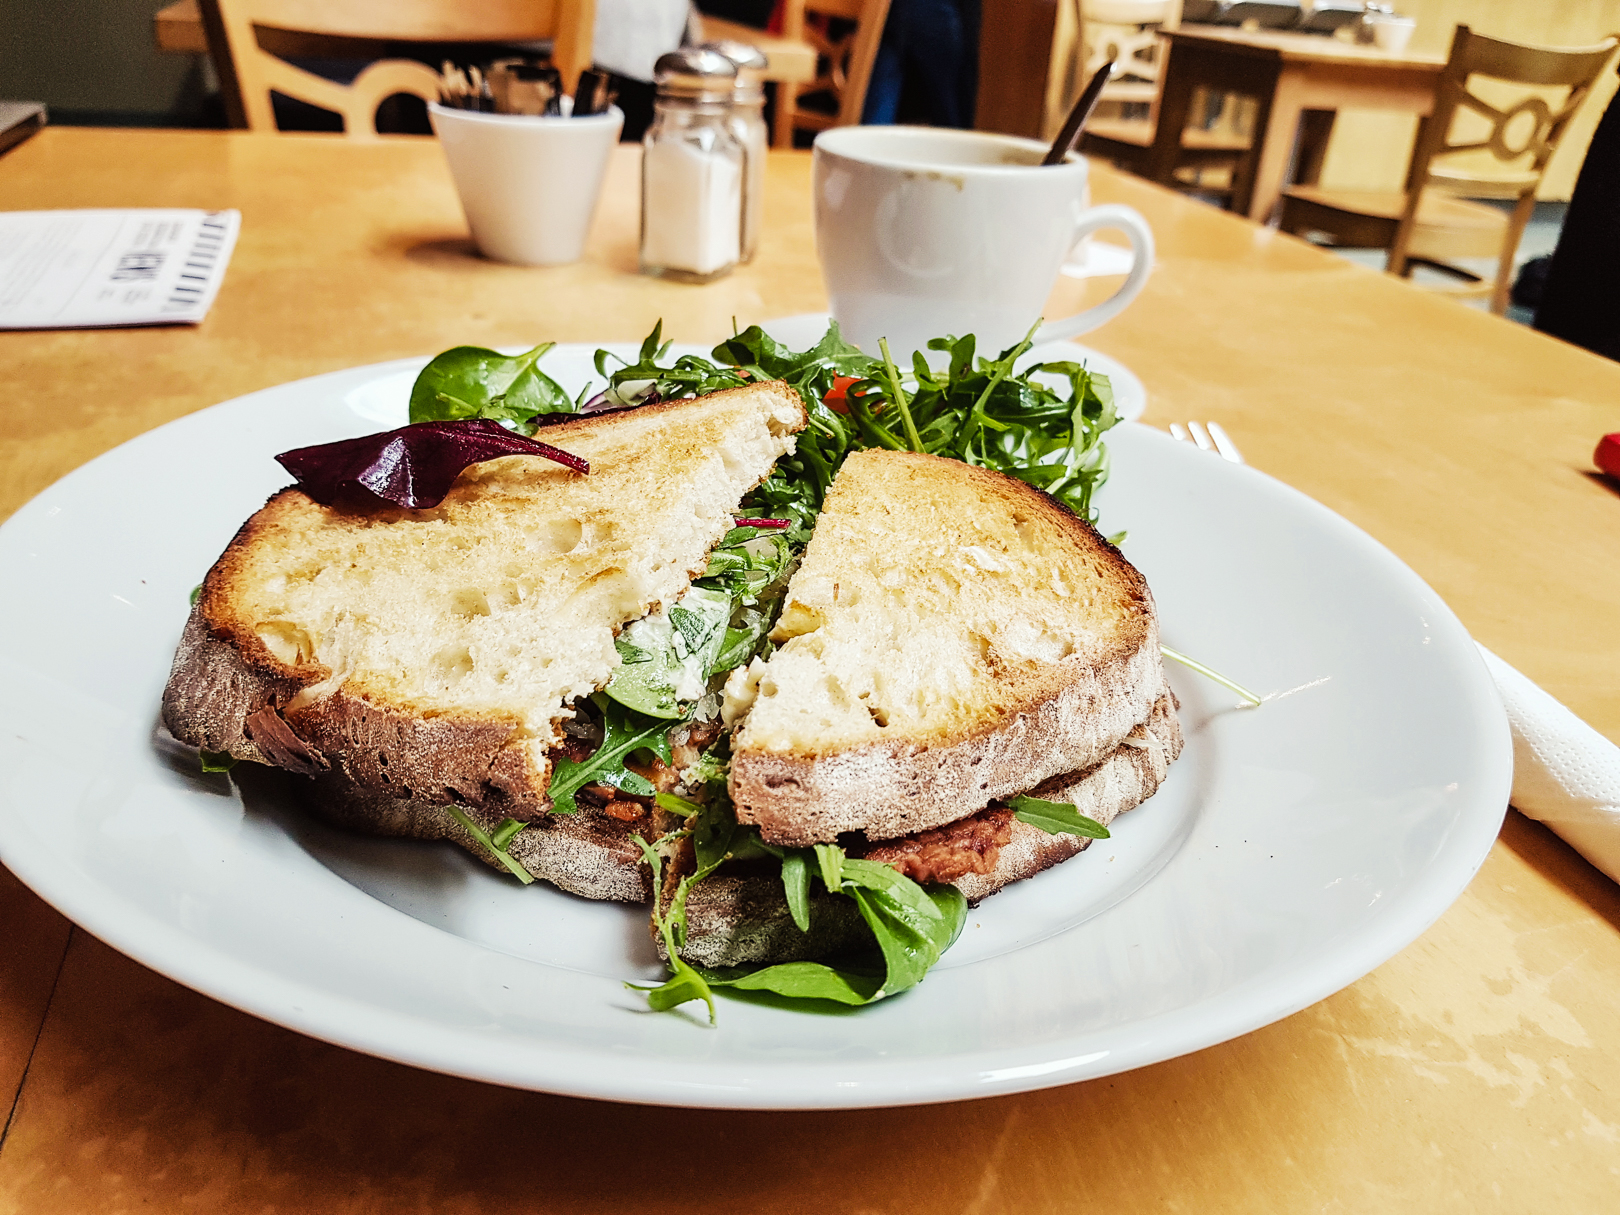 Reuben Sandwich with fresh salad at Saramago Cafe Bar at the CCA in Glasgow.